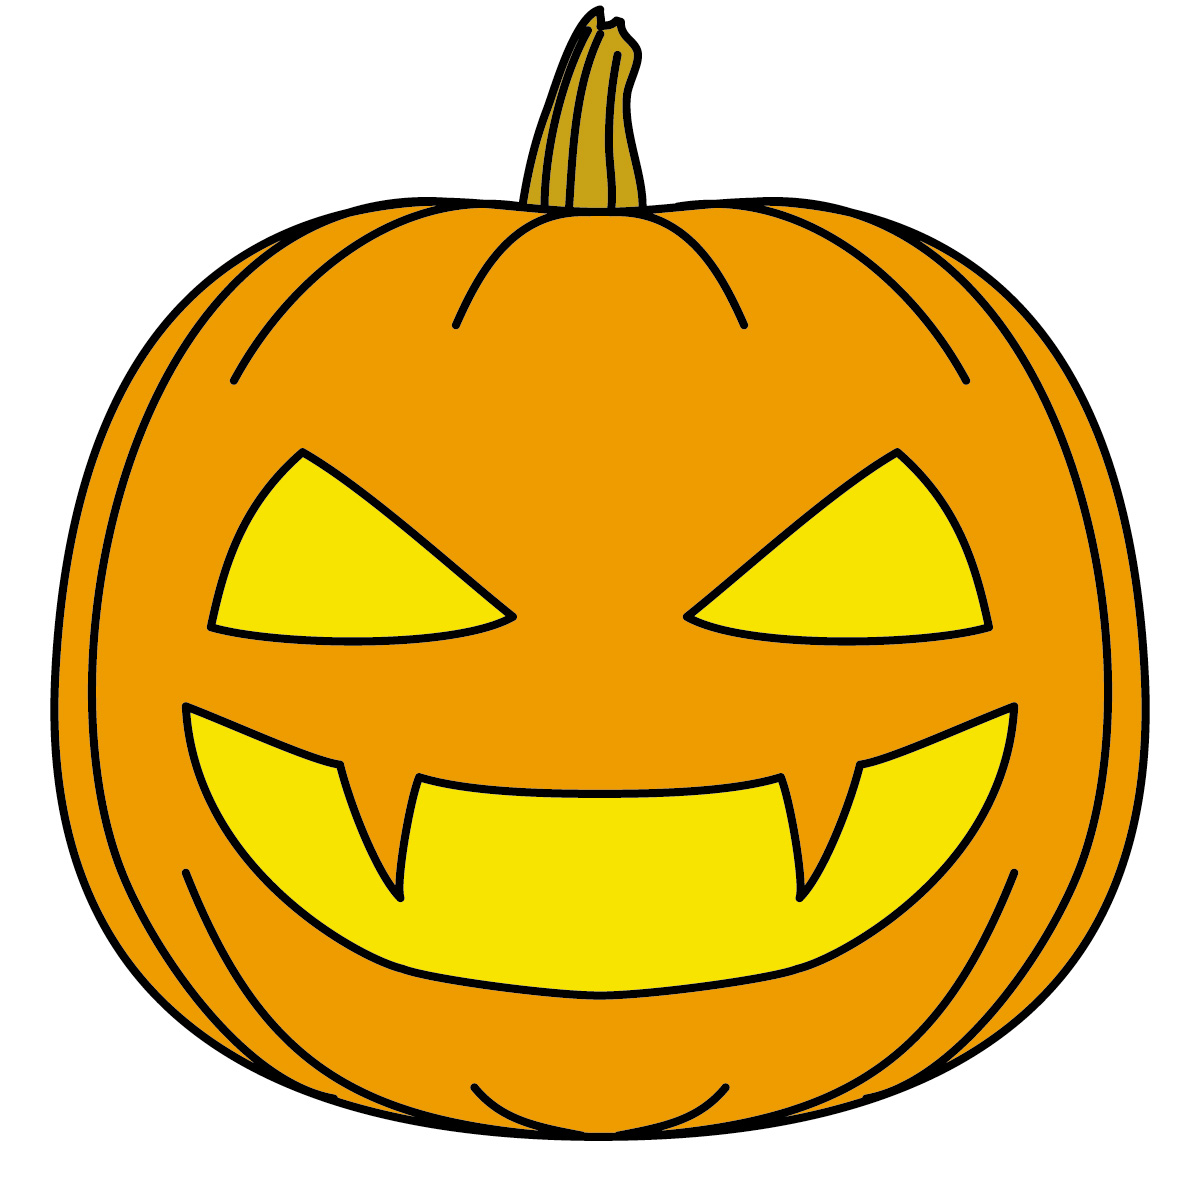 Cream colored pumpkin clipart.